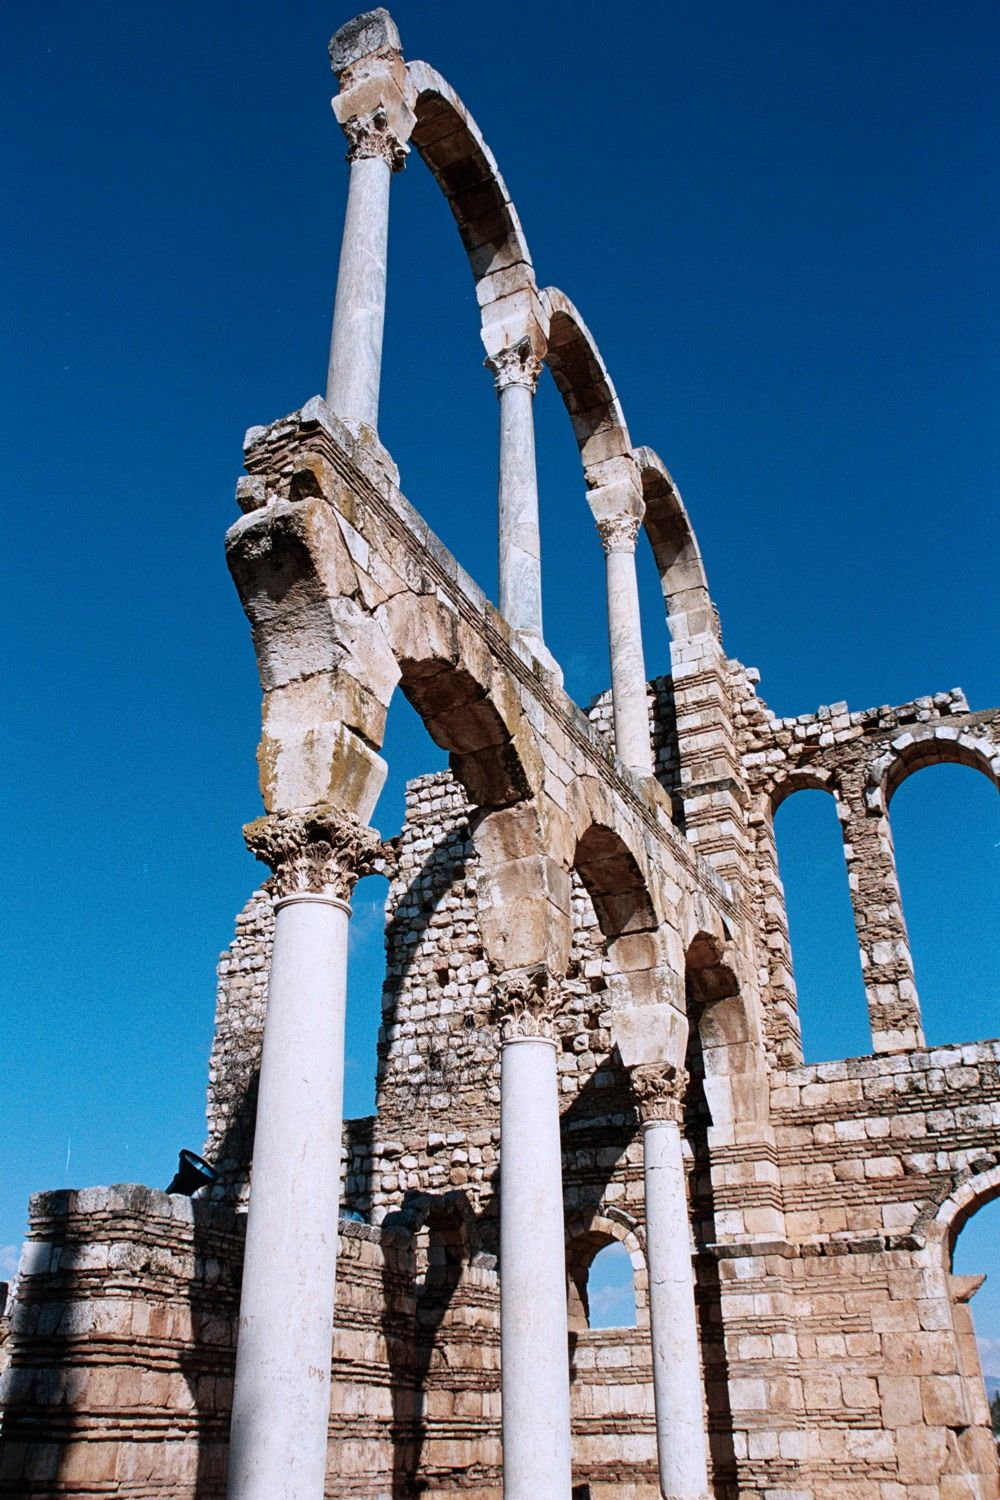 title: Cool Shot of the Umayyad Anjar Ruins